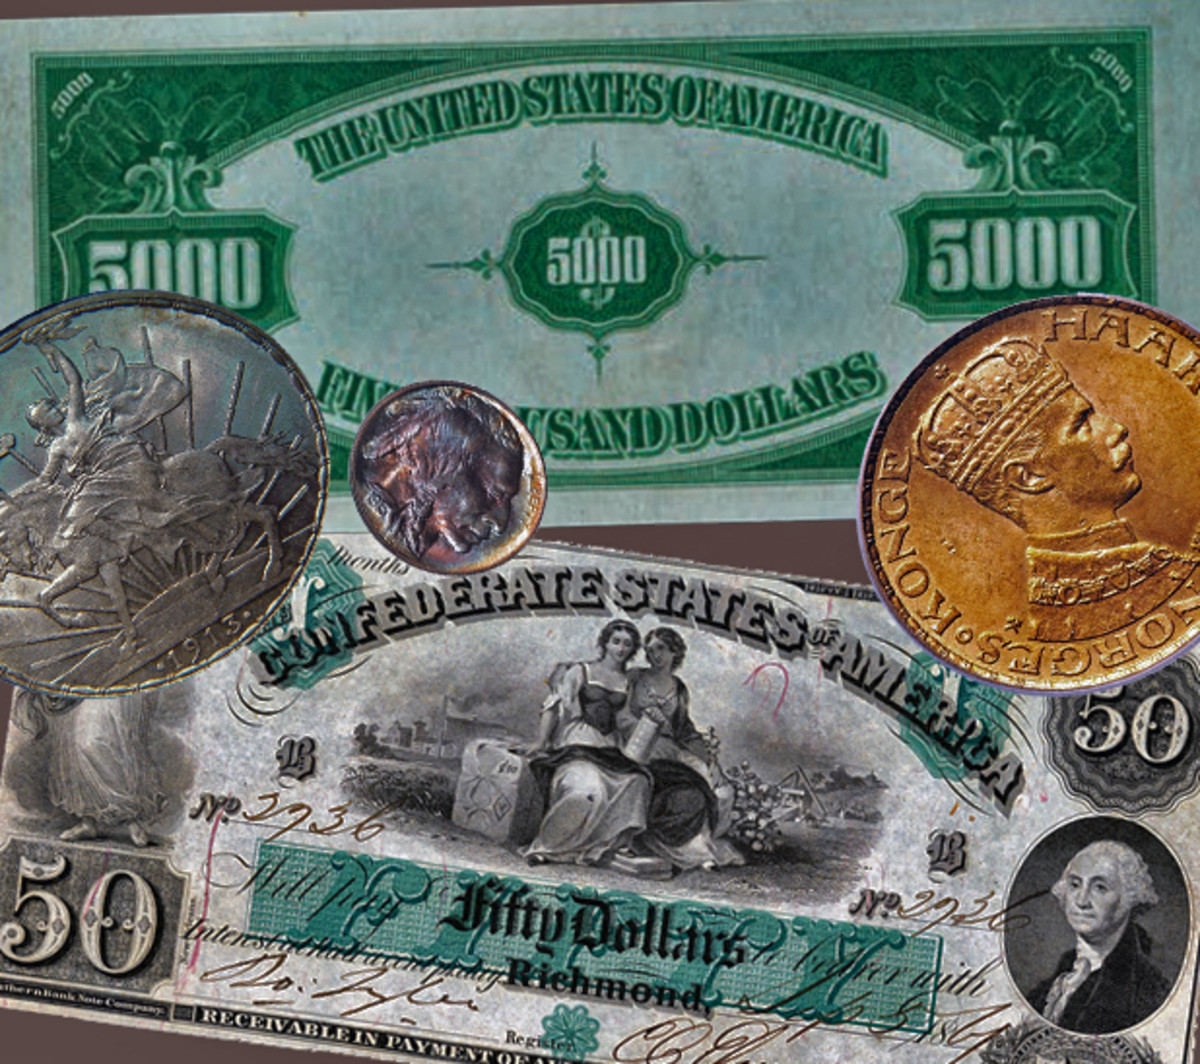 Collectors, especially numismatists, are encouraged to enter.